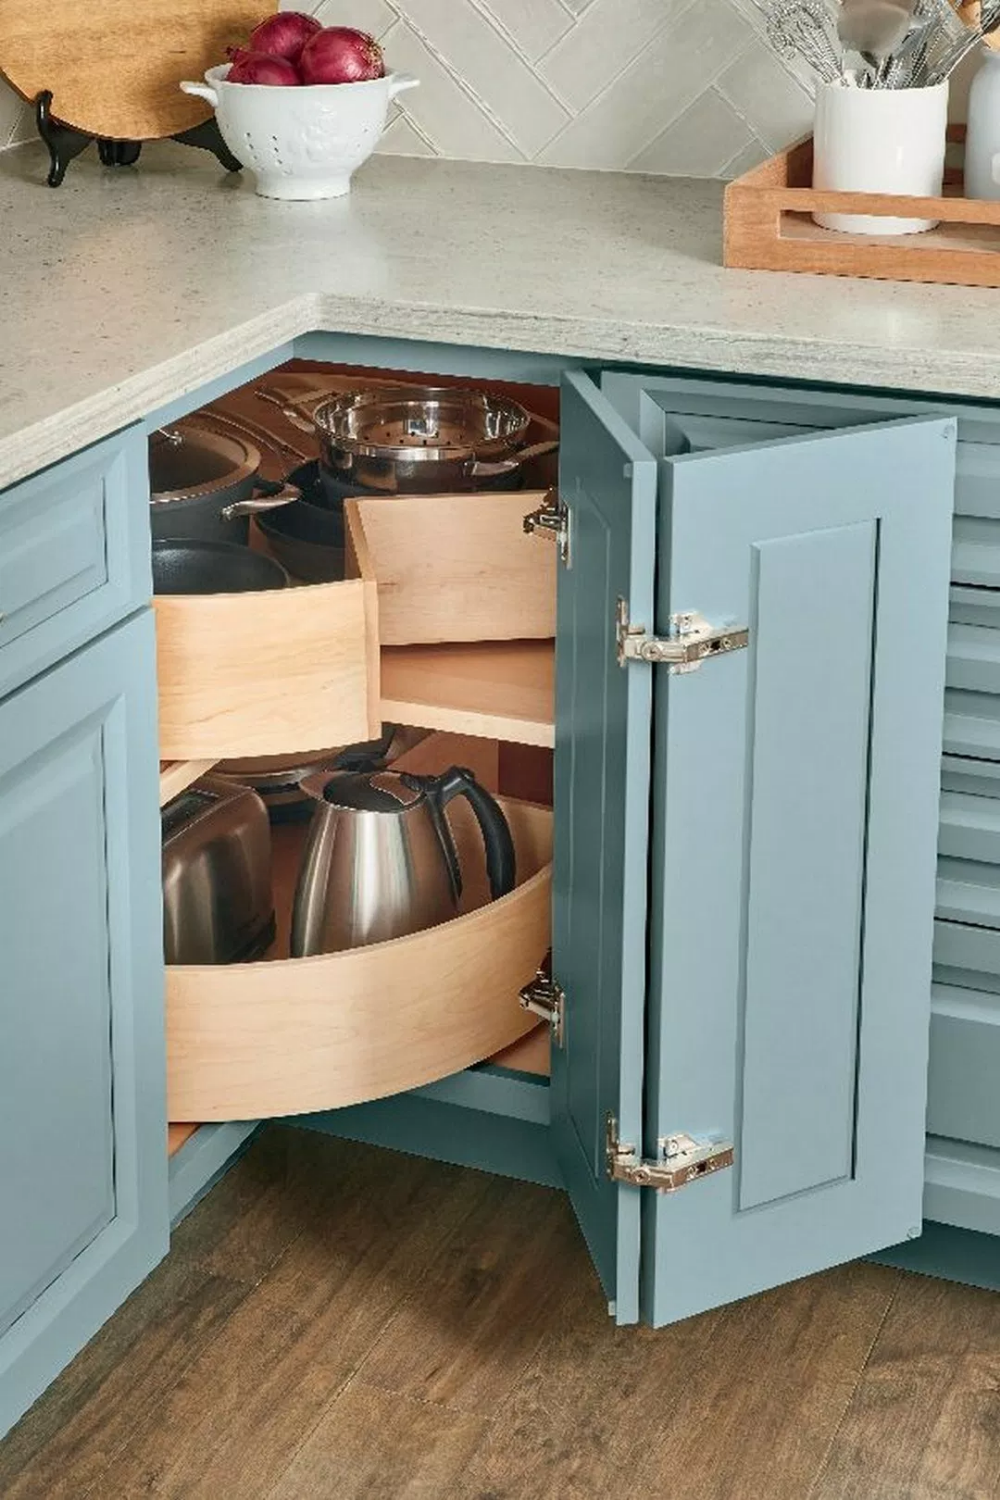 45 Gorgeous Corner Cabinet Storage Ideas For Your Kitchen Corner Storage Cabinet Corner Kitchen Cabinet Kitchen Cabinet Storage